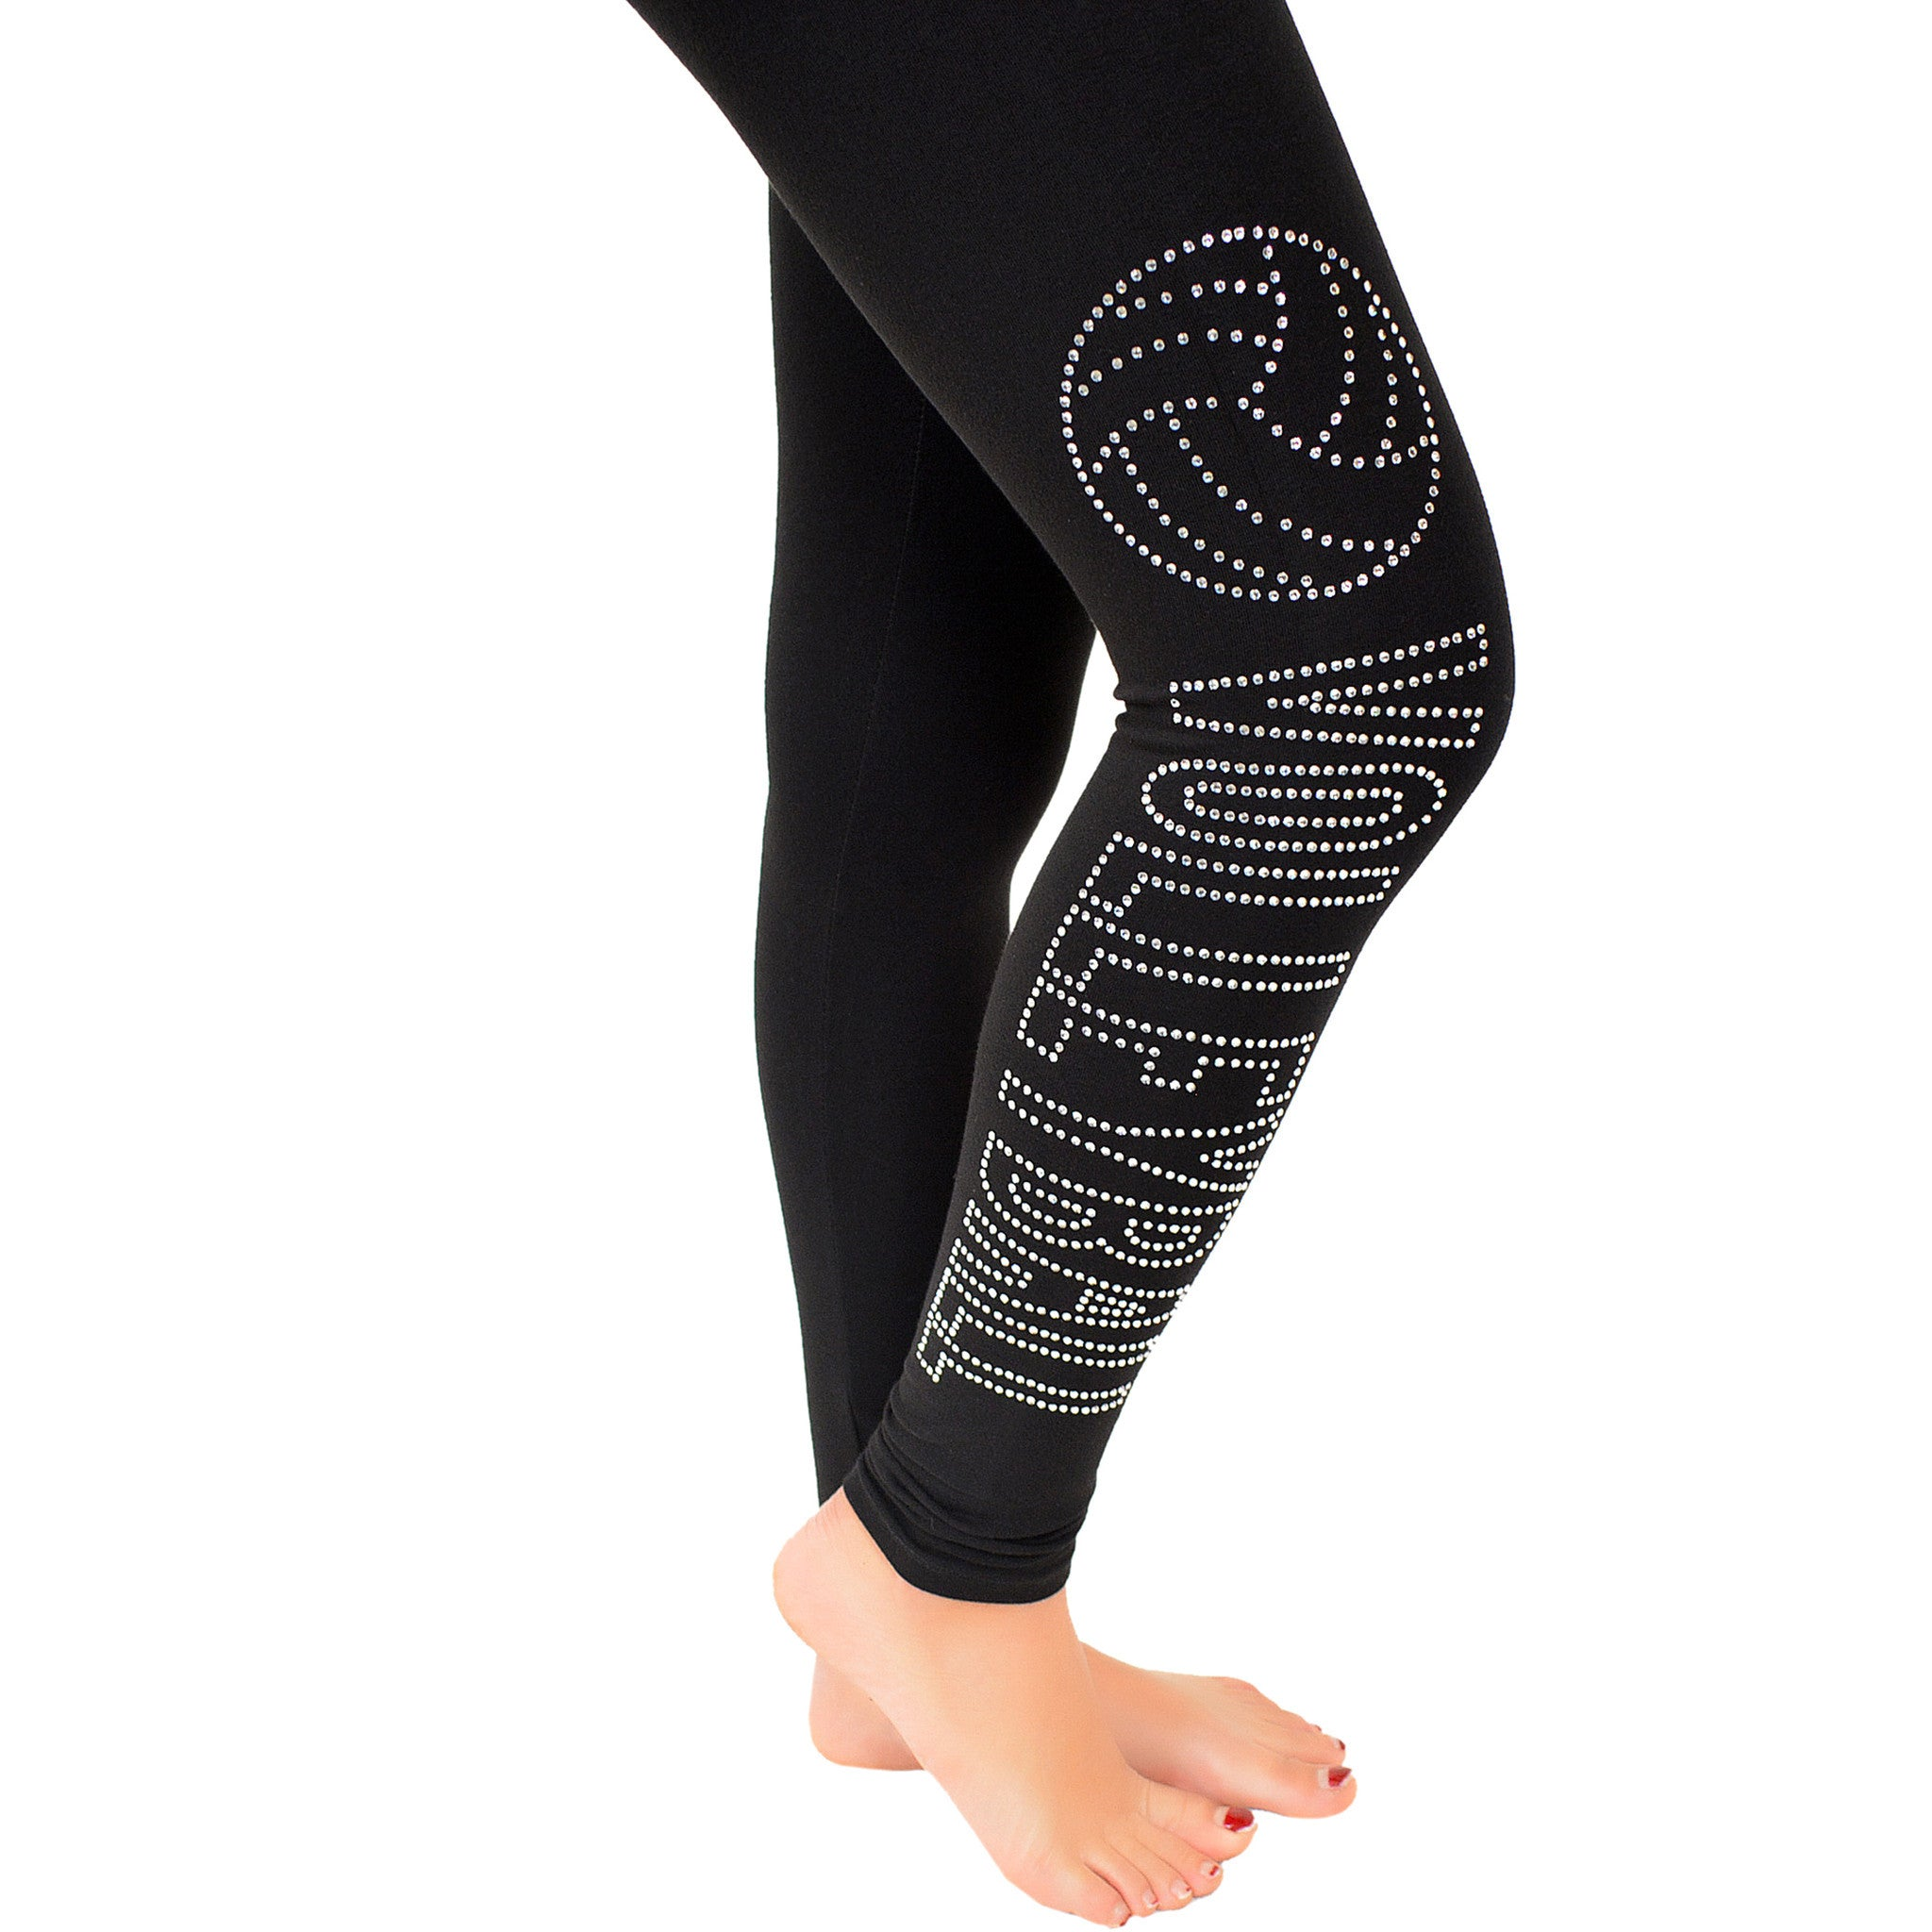 Teamwear Volleyball Rhinestone Foldover Cotton Leggings